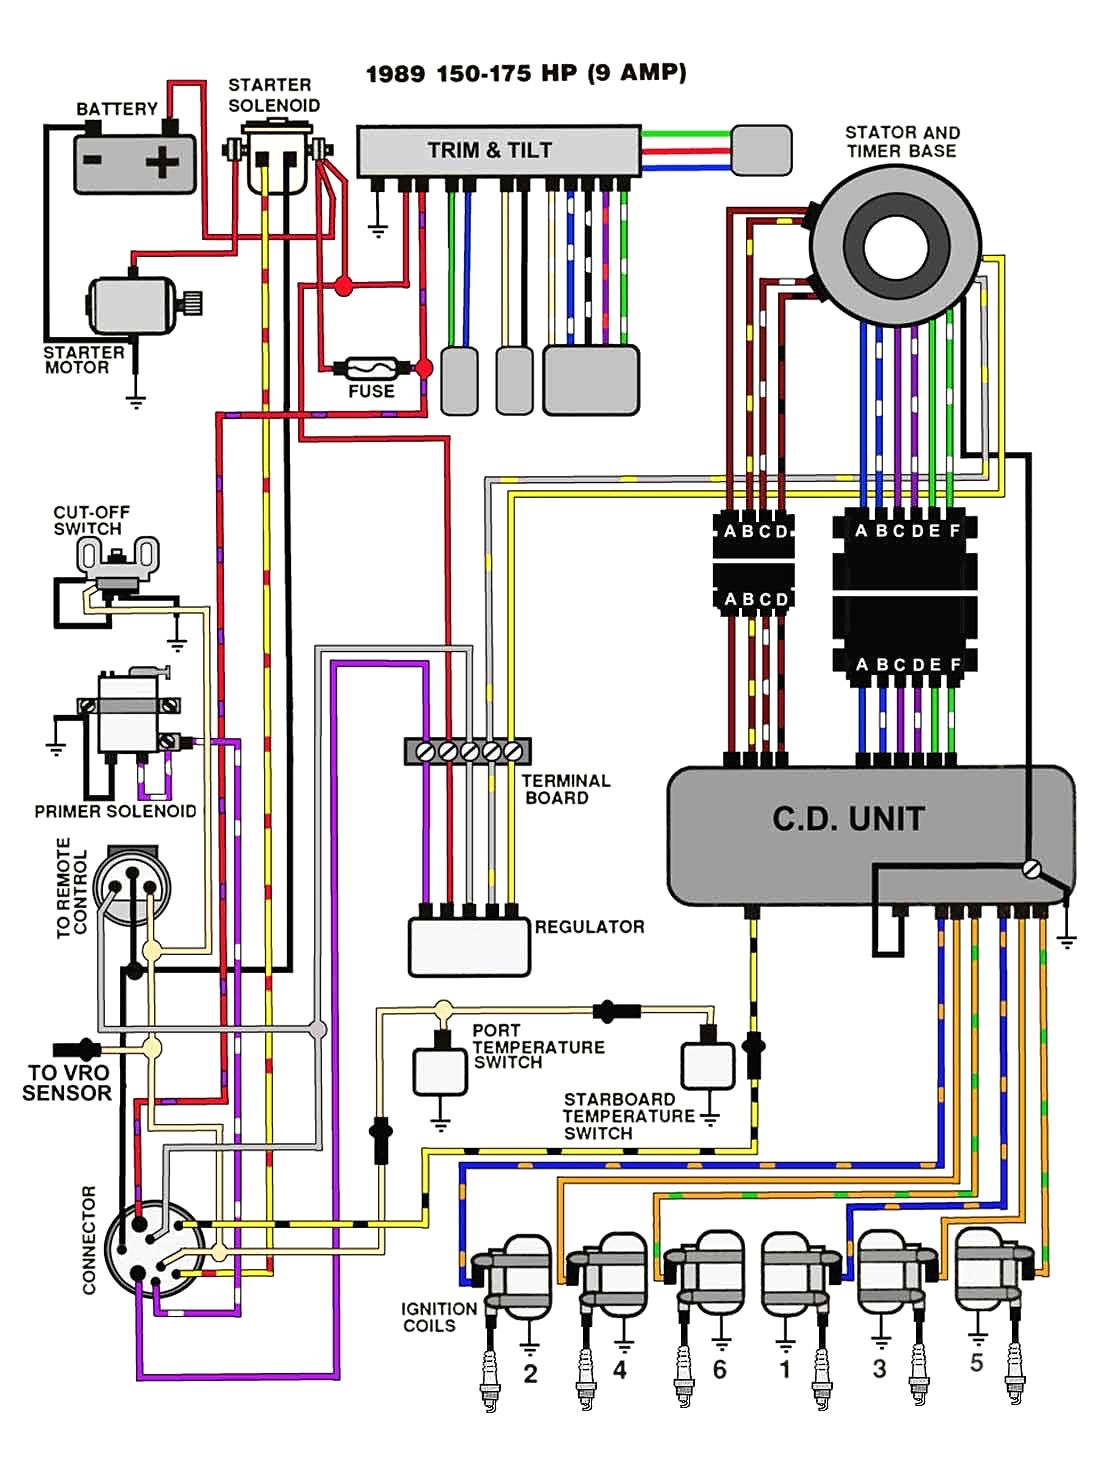 hight resolution of alpine v12 amp wiring diagram wiring diagram worldalpine v12 amp wiring diagram data diagram schematic alpine